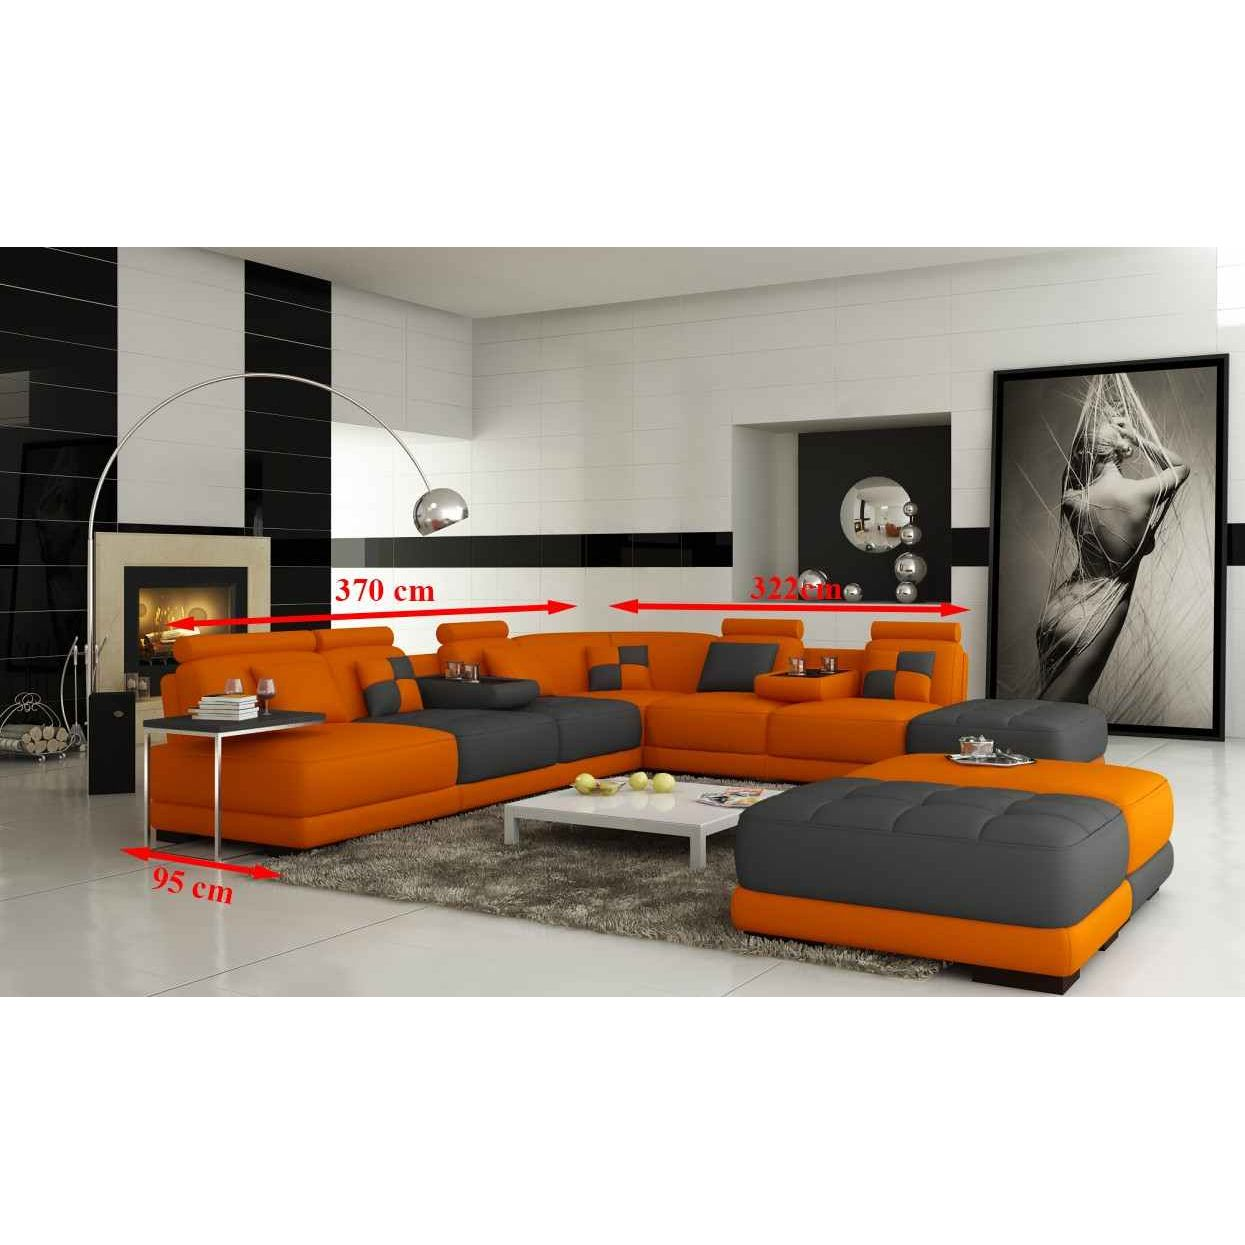 deco in paris 2 canape panoramique en cuir orange et gris design malaga malaga orangegris. Black Bedroom Furniture Sets. Home Design Ideas